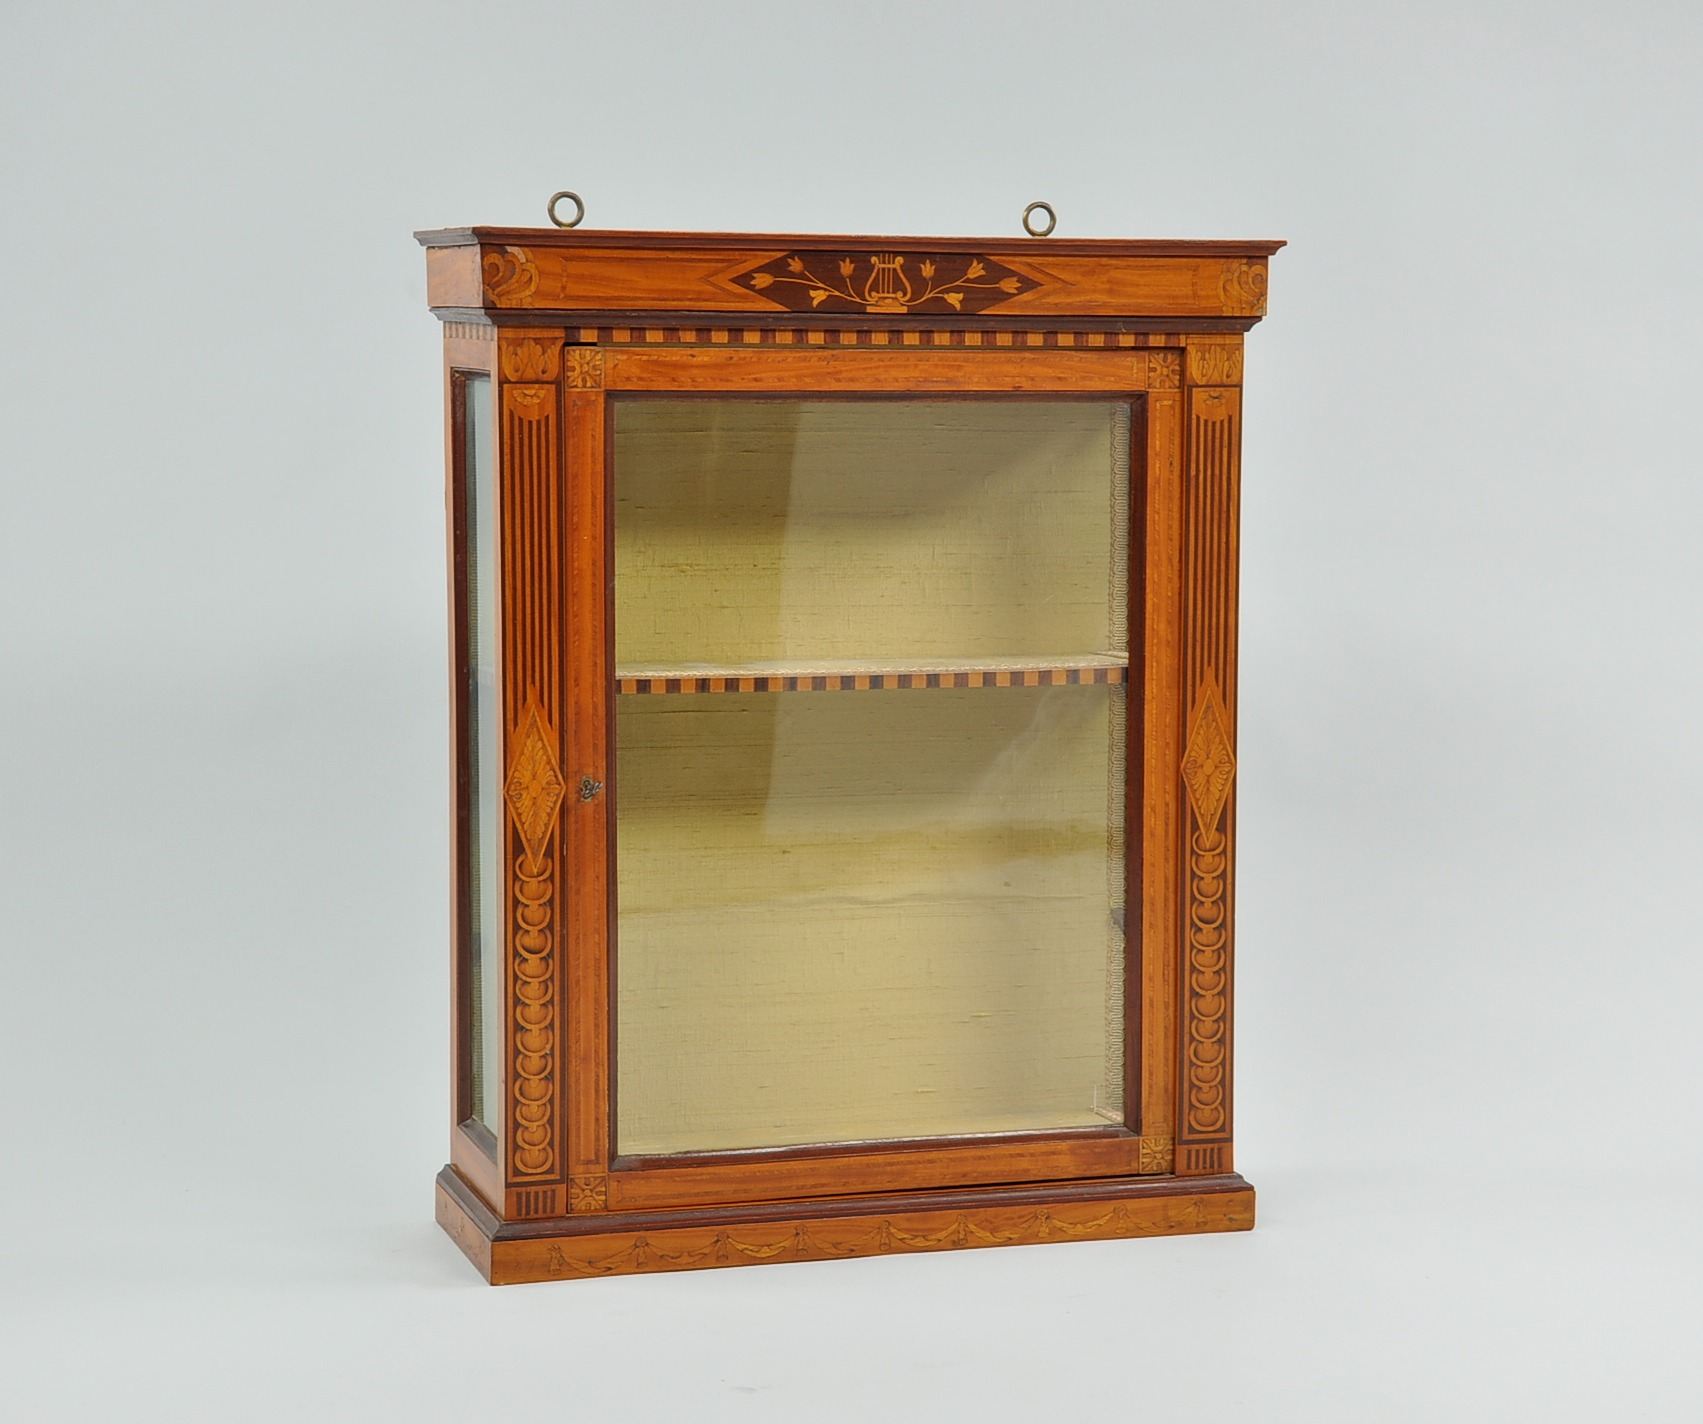 A French Directoire Wall Mount Display Cabinet 09 11 09